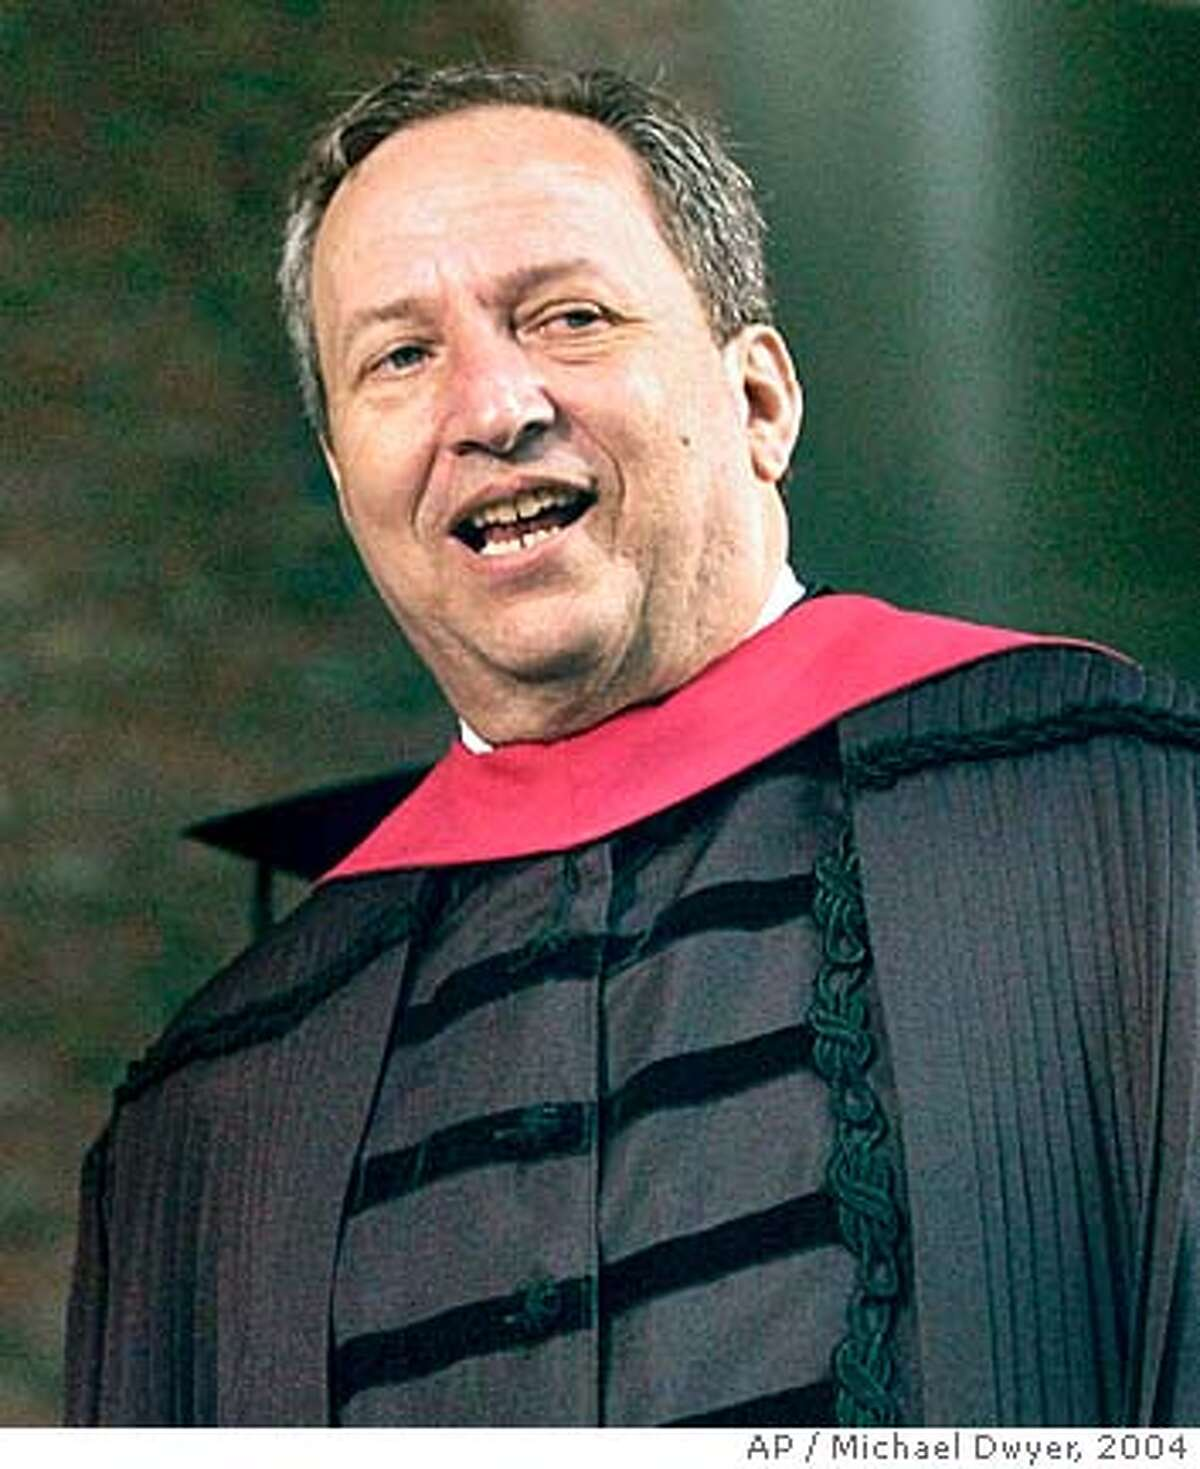 **FILE** Harvard University President Lawrence Summers is shown during Harvard's 353rd commencement ceremonies, in this June 10, 2004, file photo in Cambridge, Mass. Summers said he relented and released a transcript of his provocative remarks on women in science to help his school get beyond the furor the comments created. Heading into a potentially contentious meeting with faculty on Tuesday they seemed to spark another round of debate.(AP Photo/Michael Dwyer, File) Ran on: 02-19-2005 Lawrence Summers Ran on: 03-16-2005 Lawrence Summers Ran on: 03-16-2005 Lawrence Summers Ran on: 09-16-2007 Lawrence Summers has been uninvited to speak at a UC Board of Regents event. Ran on: 09-16-2007 Lawrence Summers has been uninvited to speak at a UC Board of Regents event. Ran on: 09-16-2007